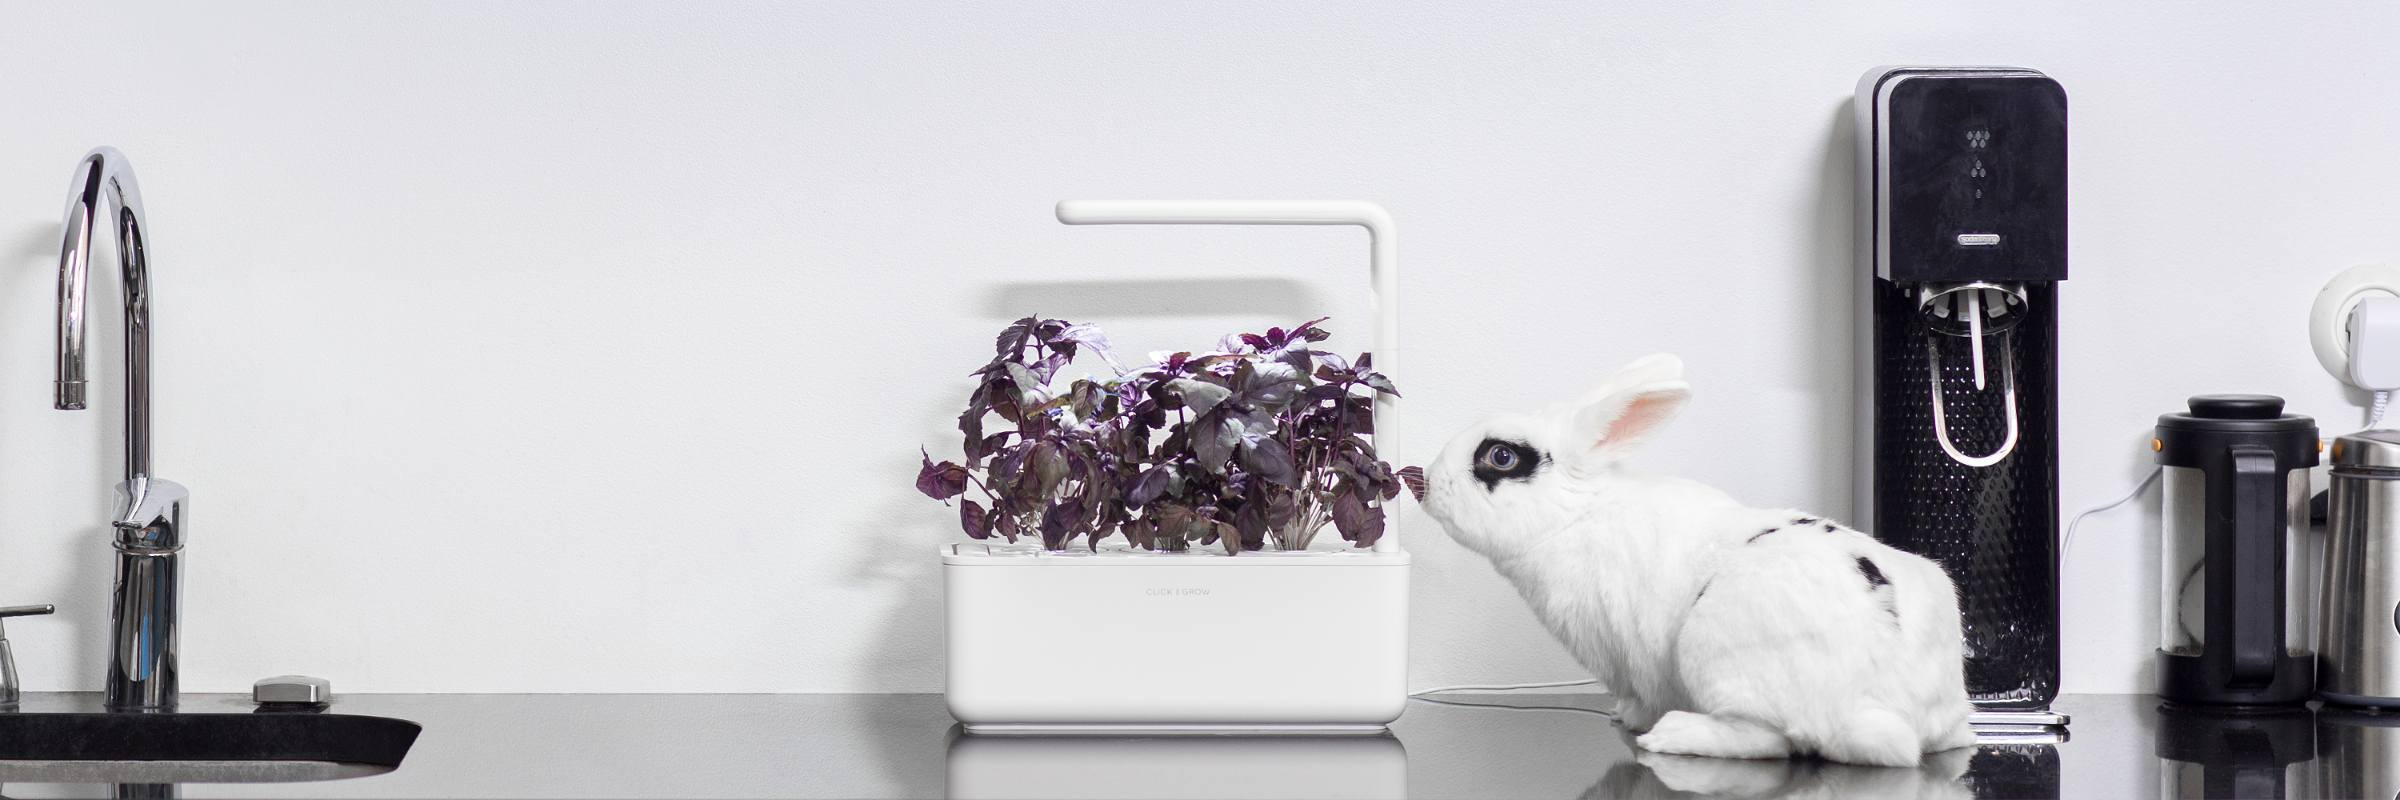 click-and-grow-smart-garden-photopoint